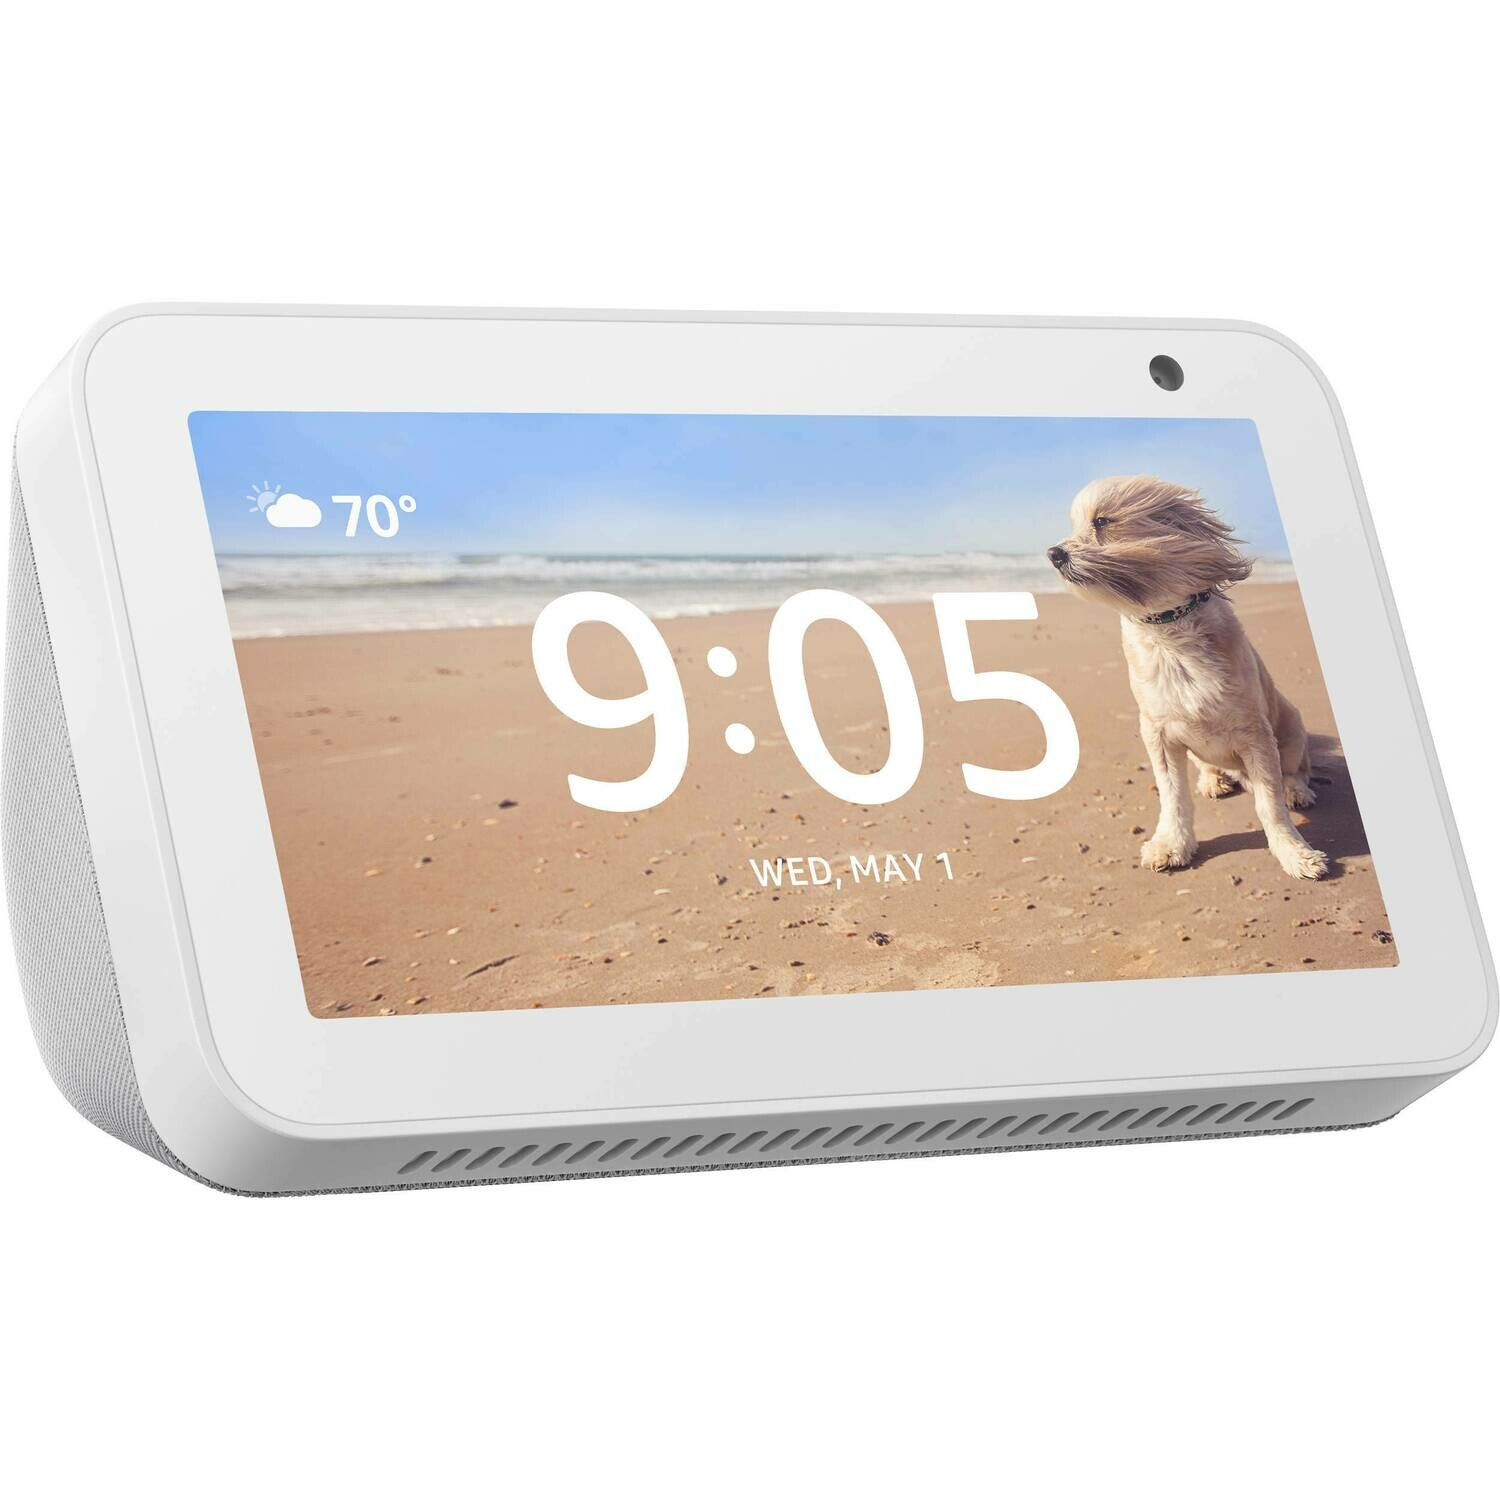 Amazon Echo Show 5 Voice Activated Speaker with Screen, White